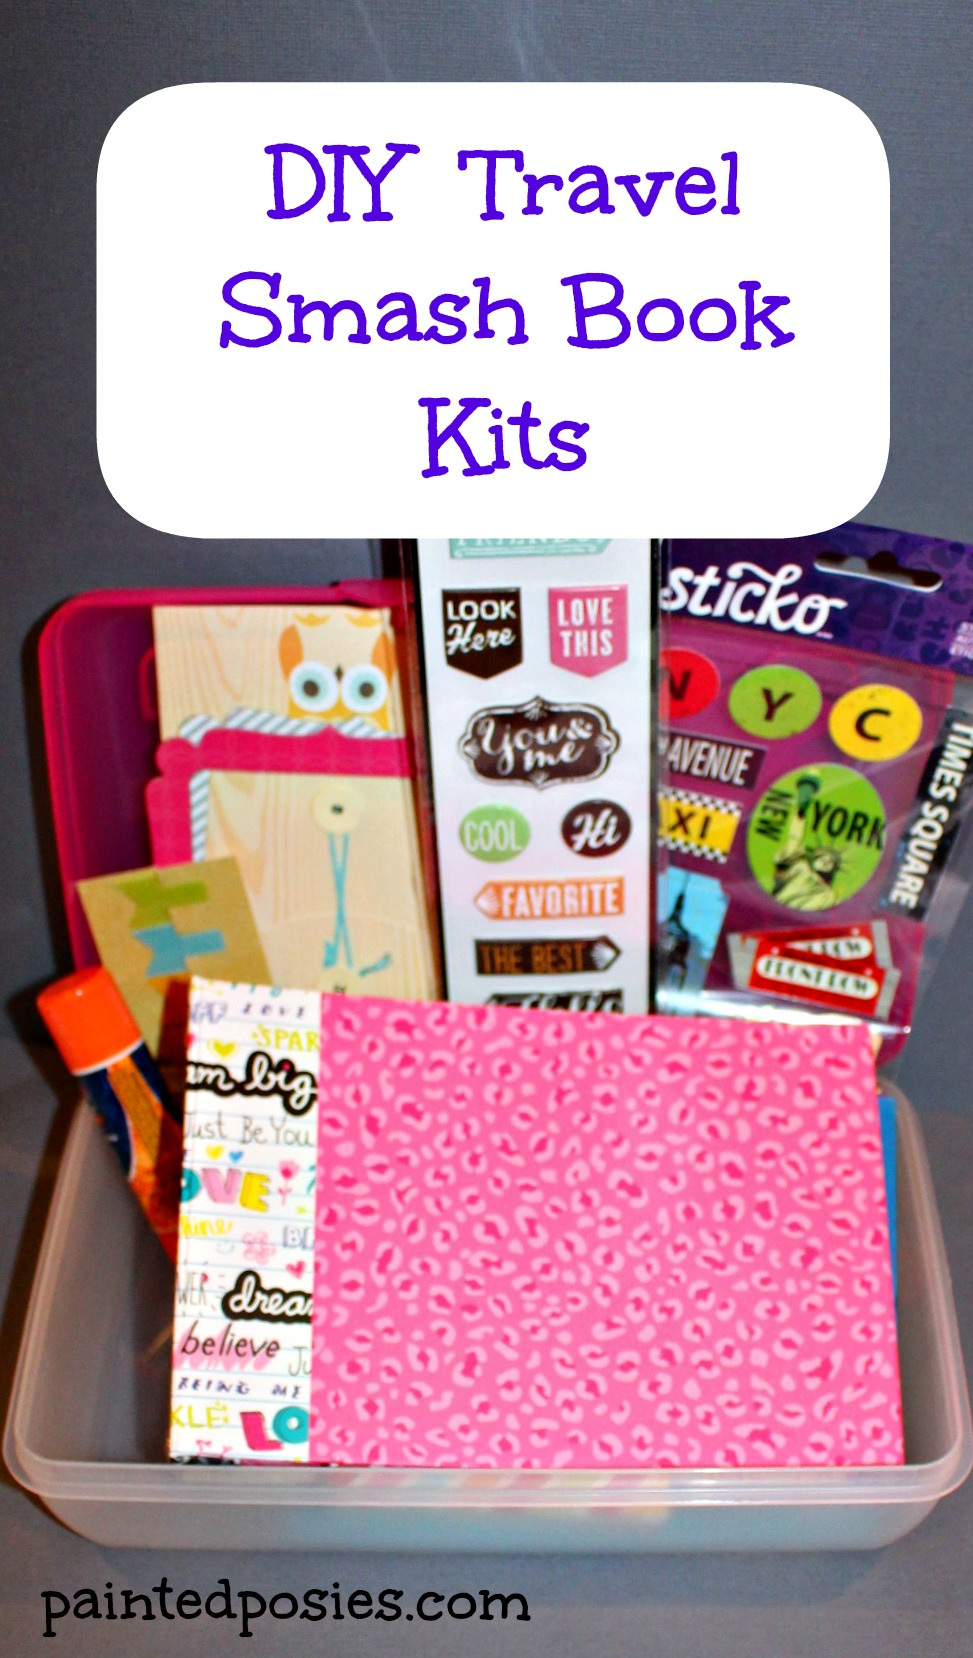 DIY Travel Smash Book Kits